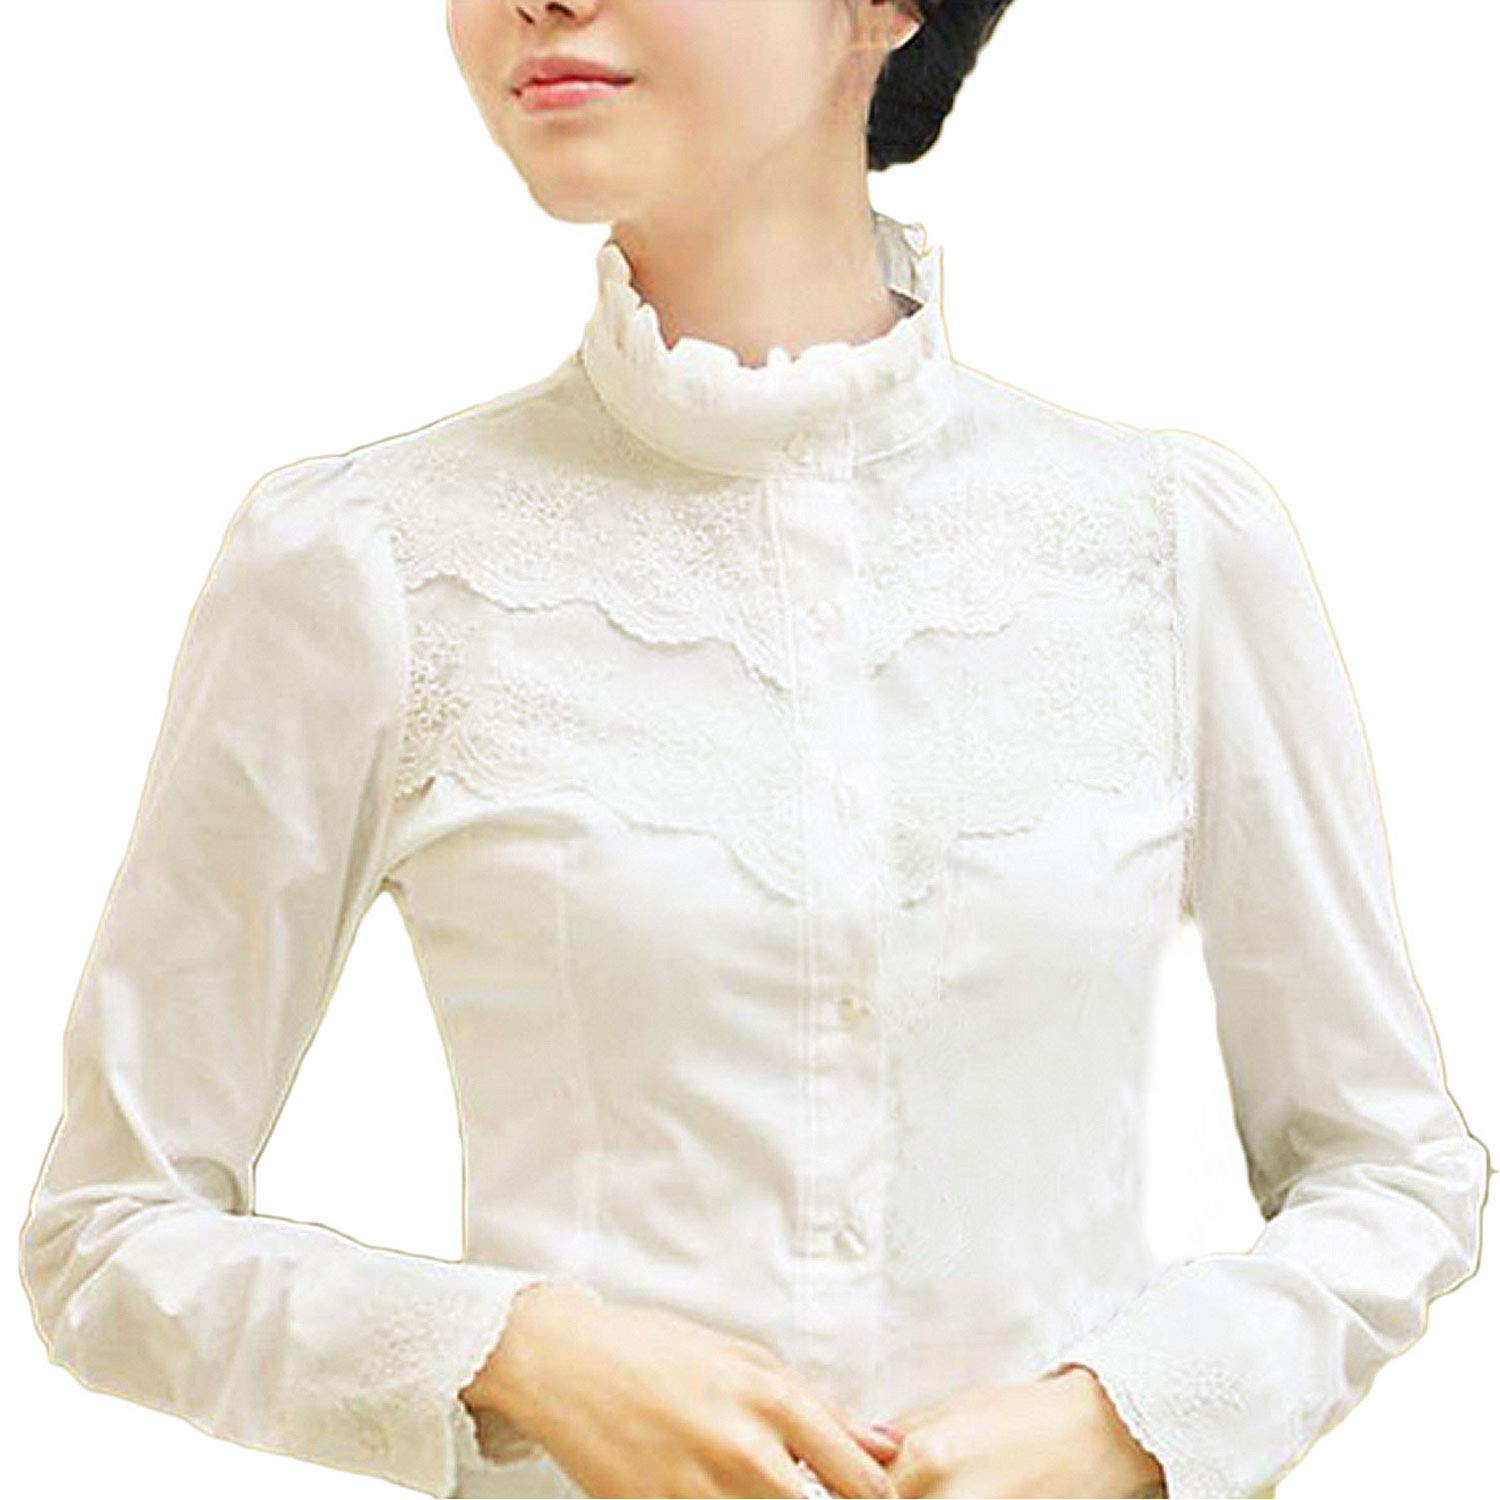 1900-1910s Clothing Nonbrand Winter Office Long Sleeve Shirt Lace Top Womens Vintage Blouse Ladies Victorian Tops �15.42 AT vintagedancer.com